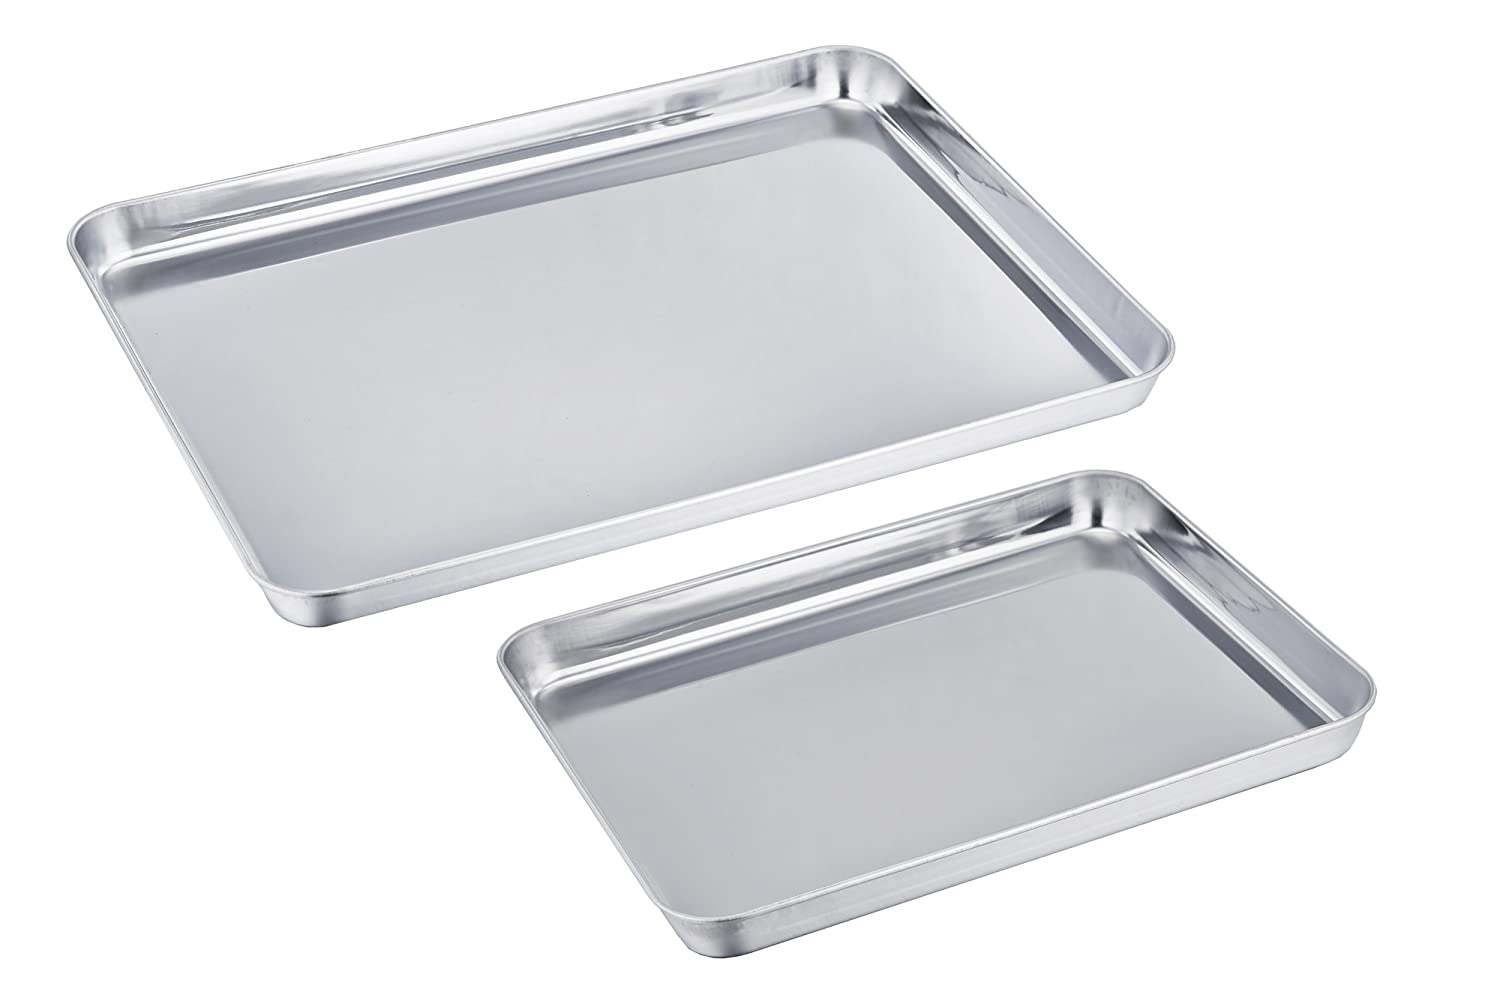 Far Stainless Steel Baking Sheets Review